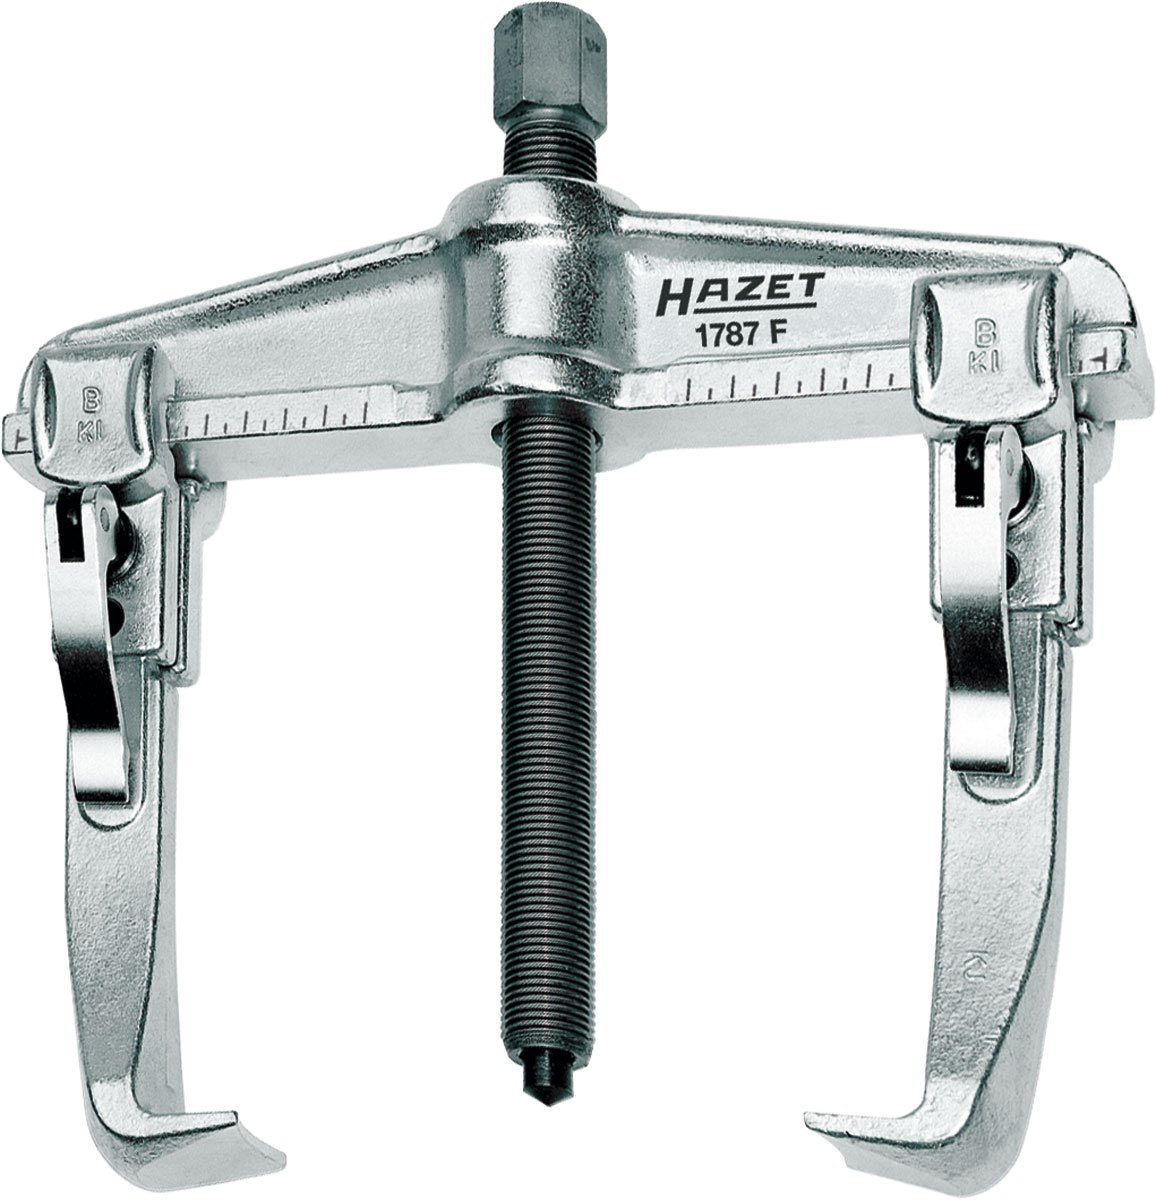 Hazet 1787F-35 Quick-clamping puller, 2-arm